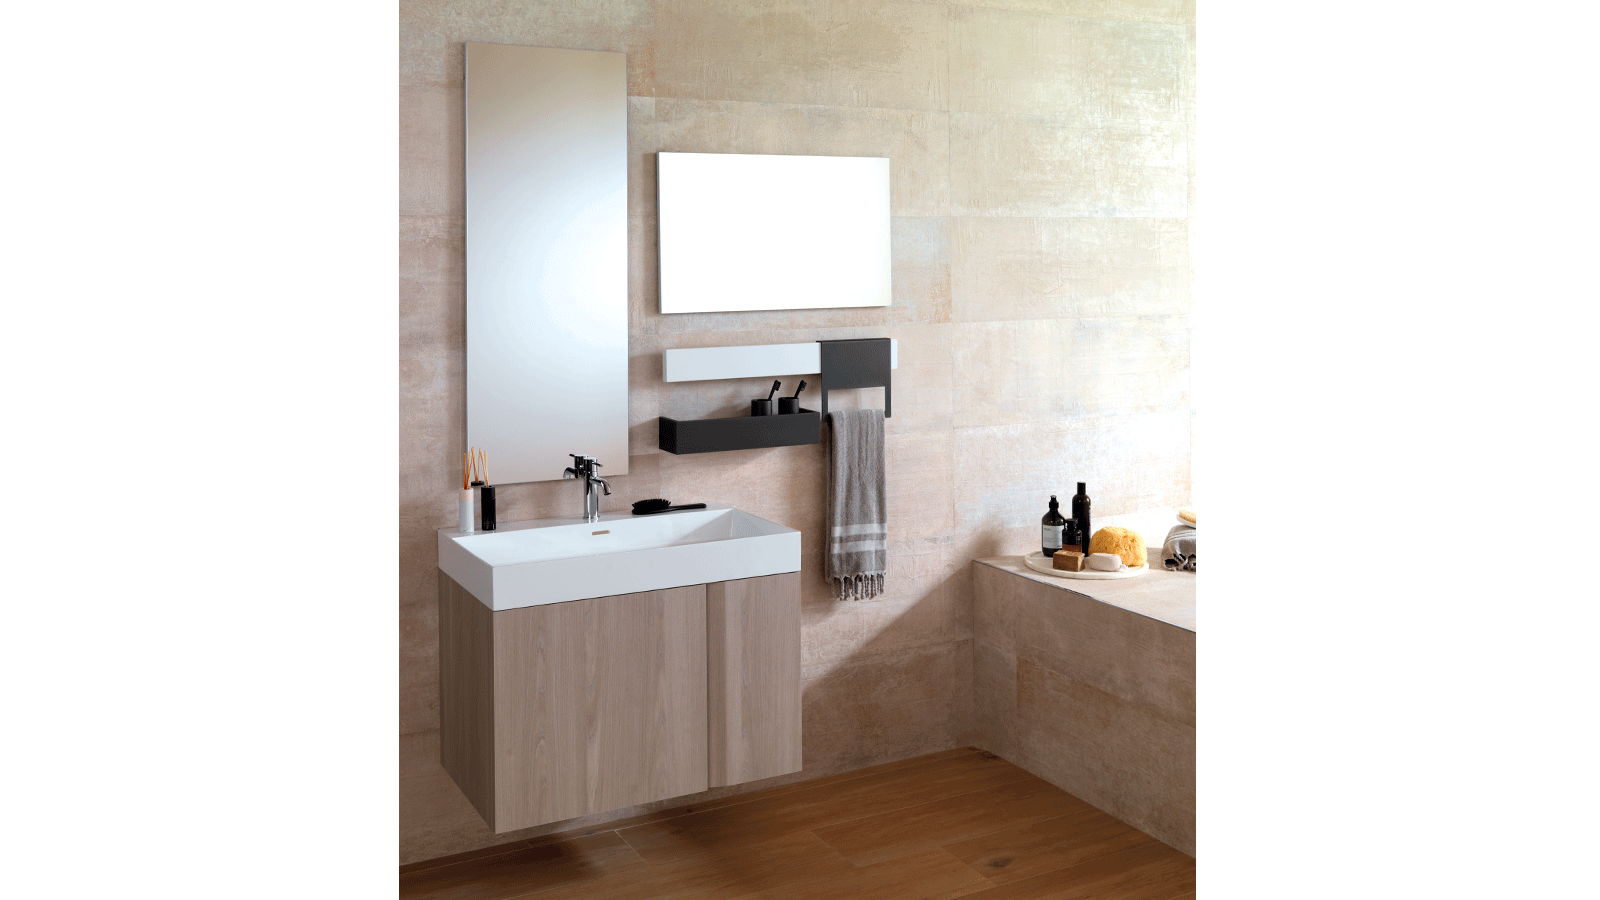 Extra-slim trends with the new Slim basin by Gamadecor